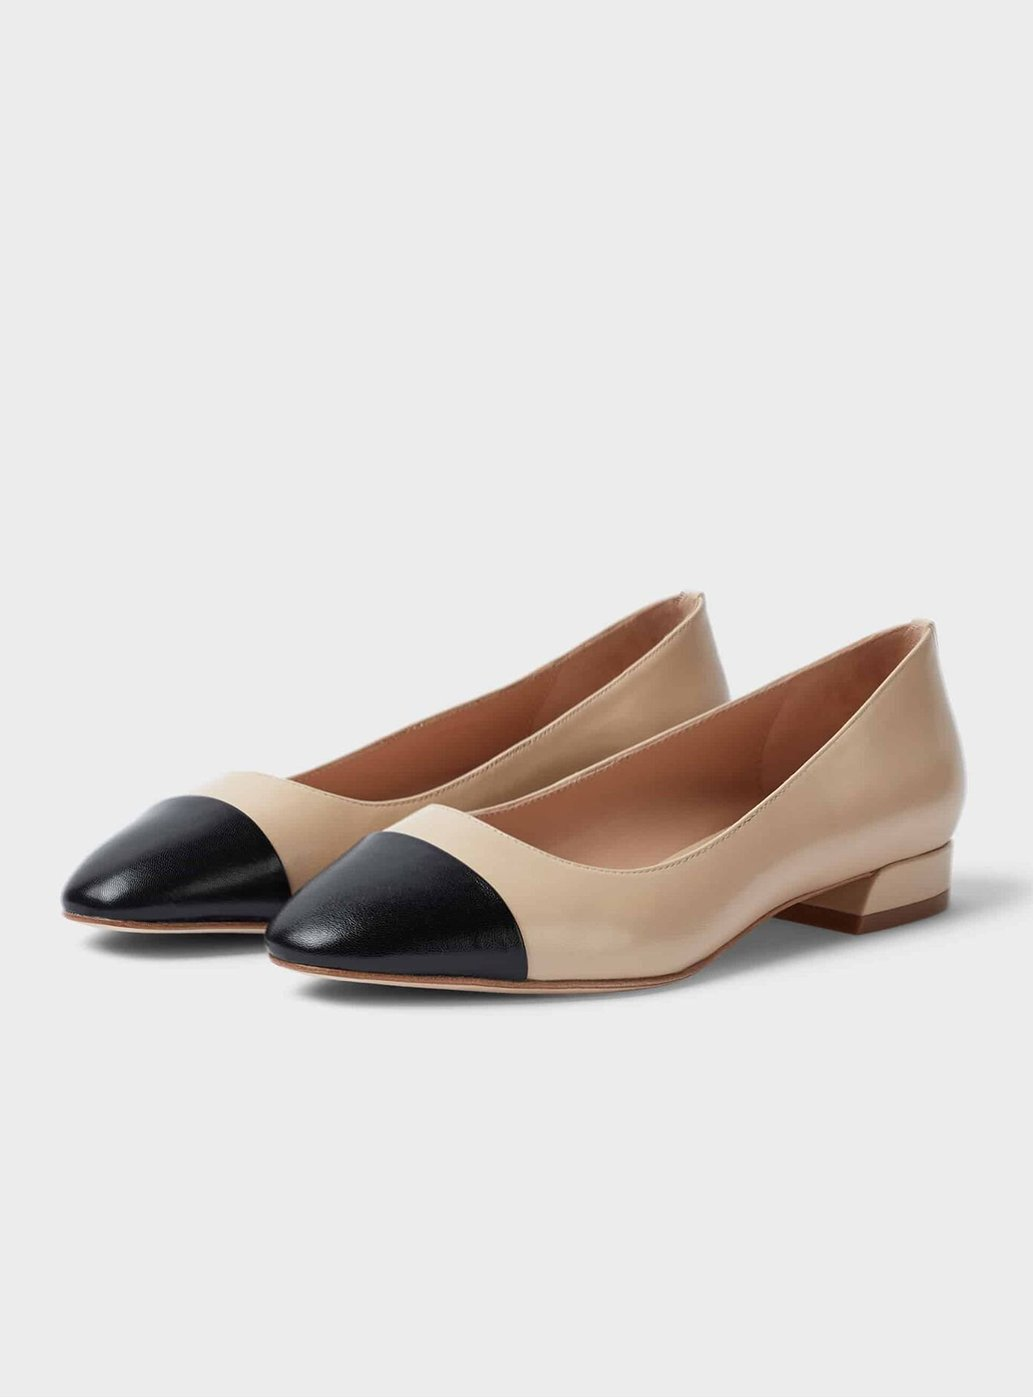 Hobbs Amelia Leather Beige and Black Flat Pumps